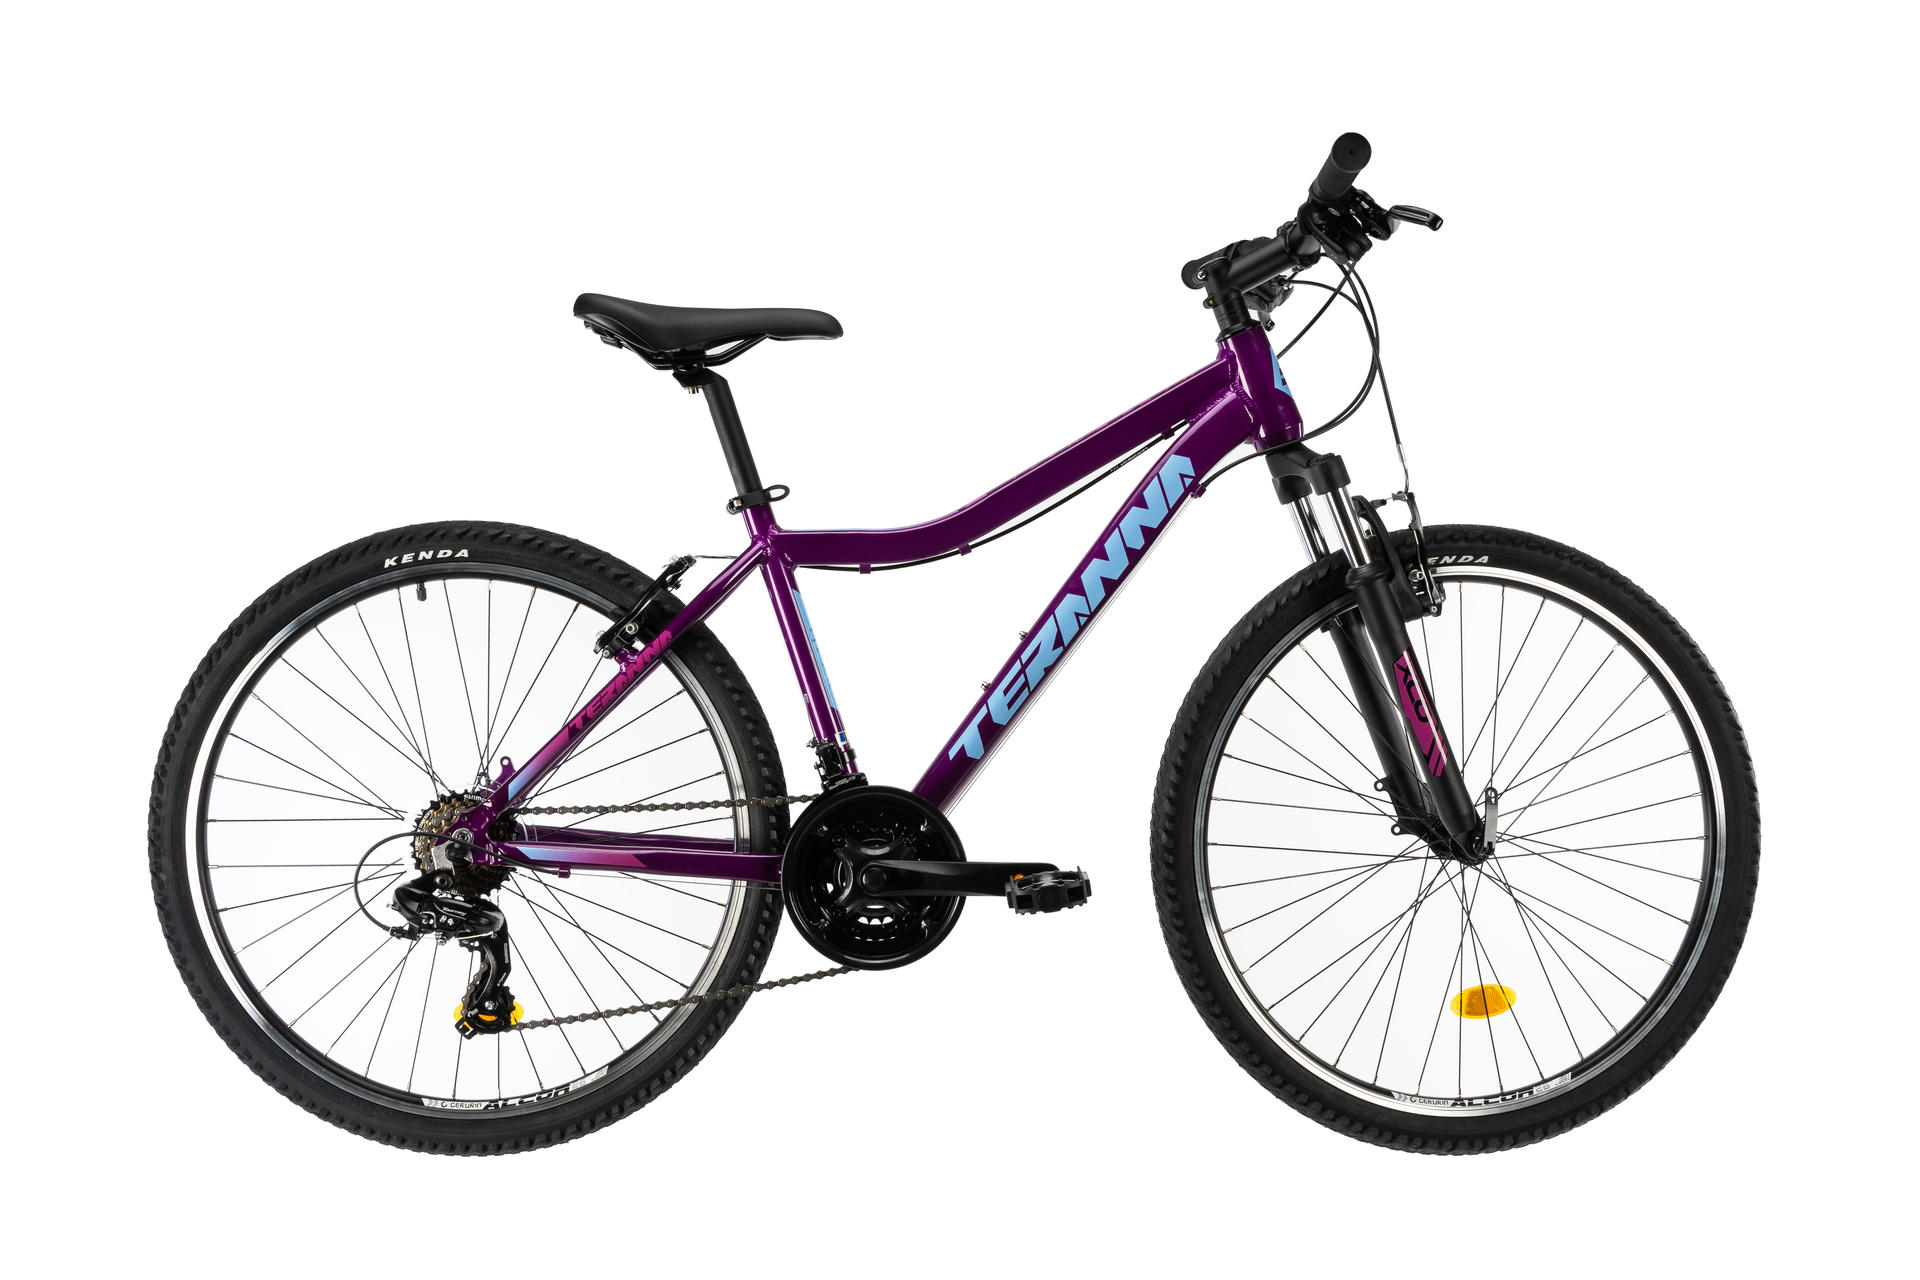 Mountain bike DHS 2622 viola 440mm